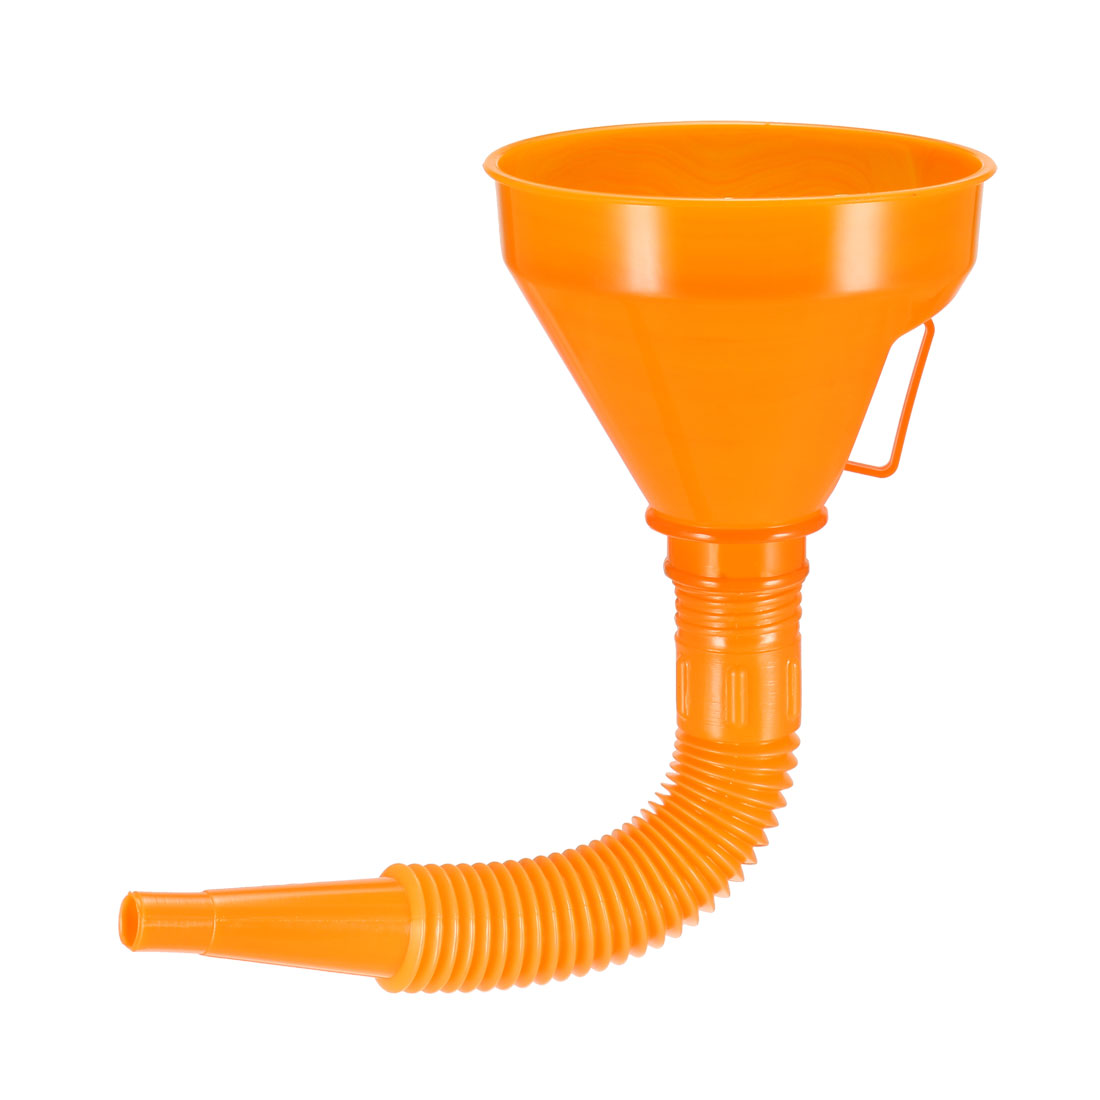 Filter Funnel 5 inch Plastic Feul Funnel with Tube Orange for Oil Water Fuel